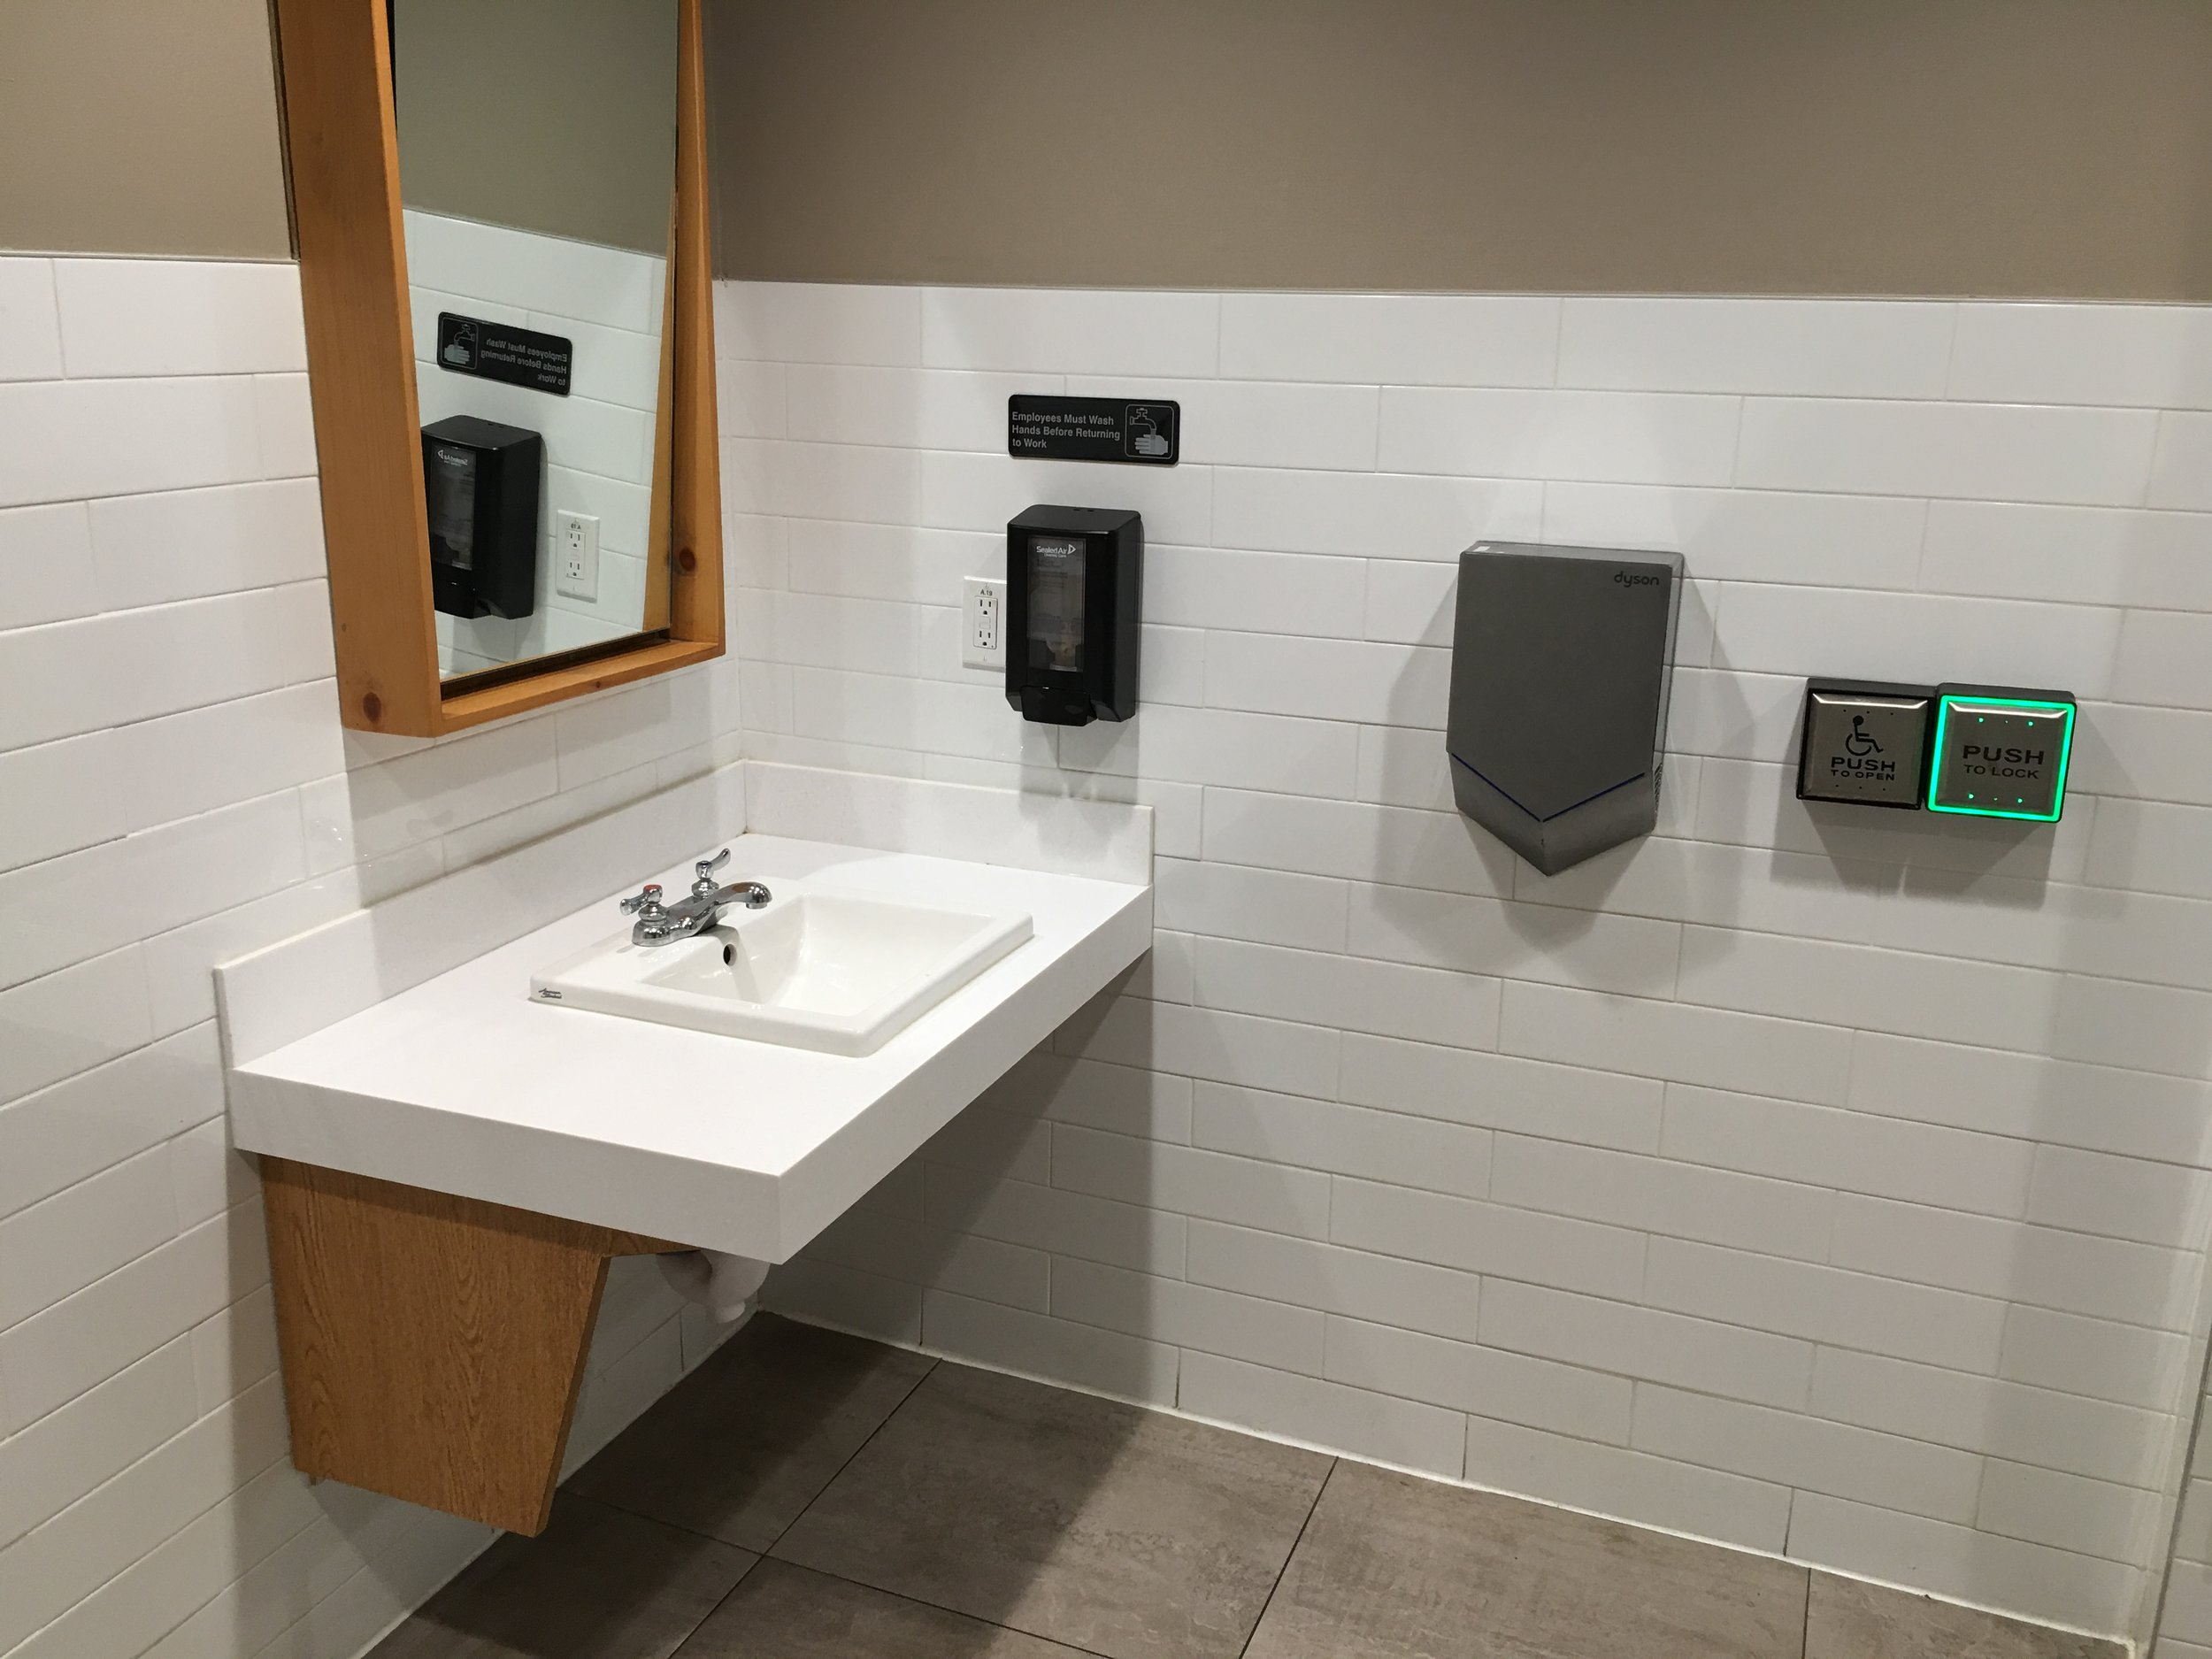 Picture of unobstructed sink and automatic dryer in the washroom